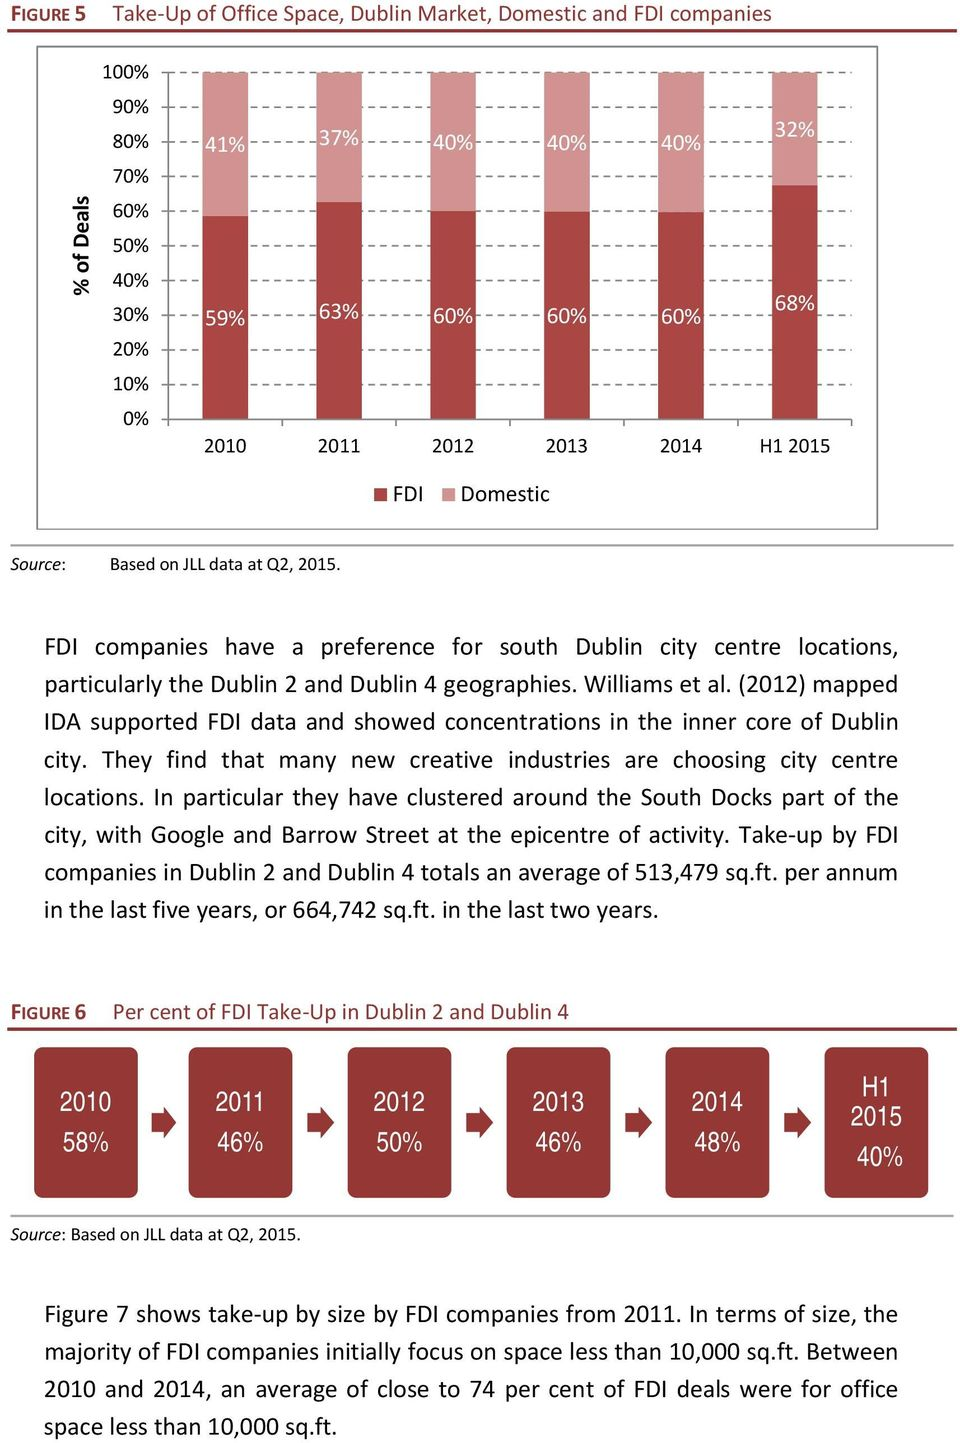 (2012) mapped IDA supported FDI data and showed concentrations in the inner core of Dublin city. They find that many new creative industries are choosing city centre locations.